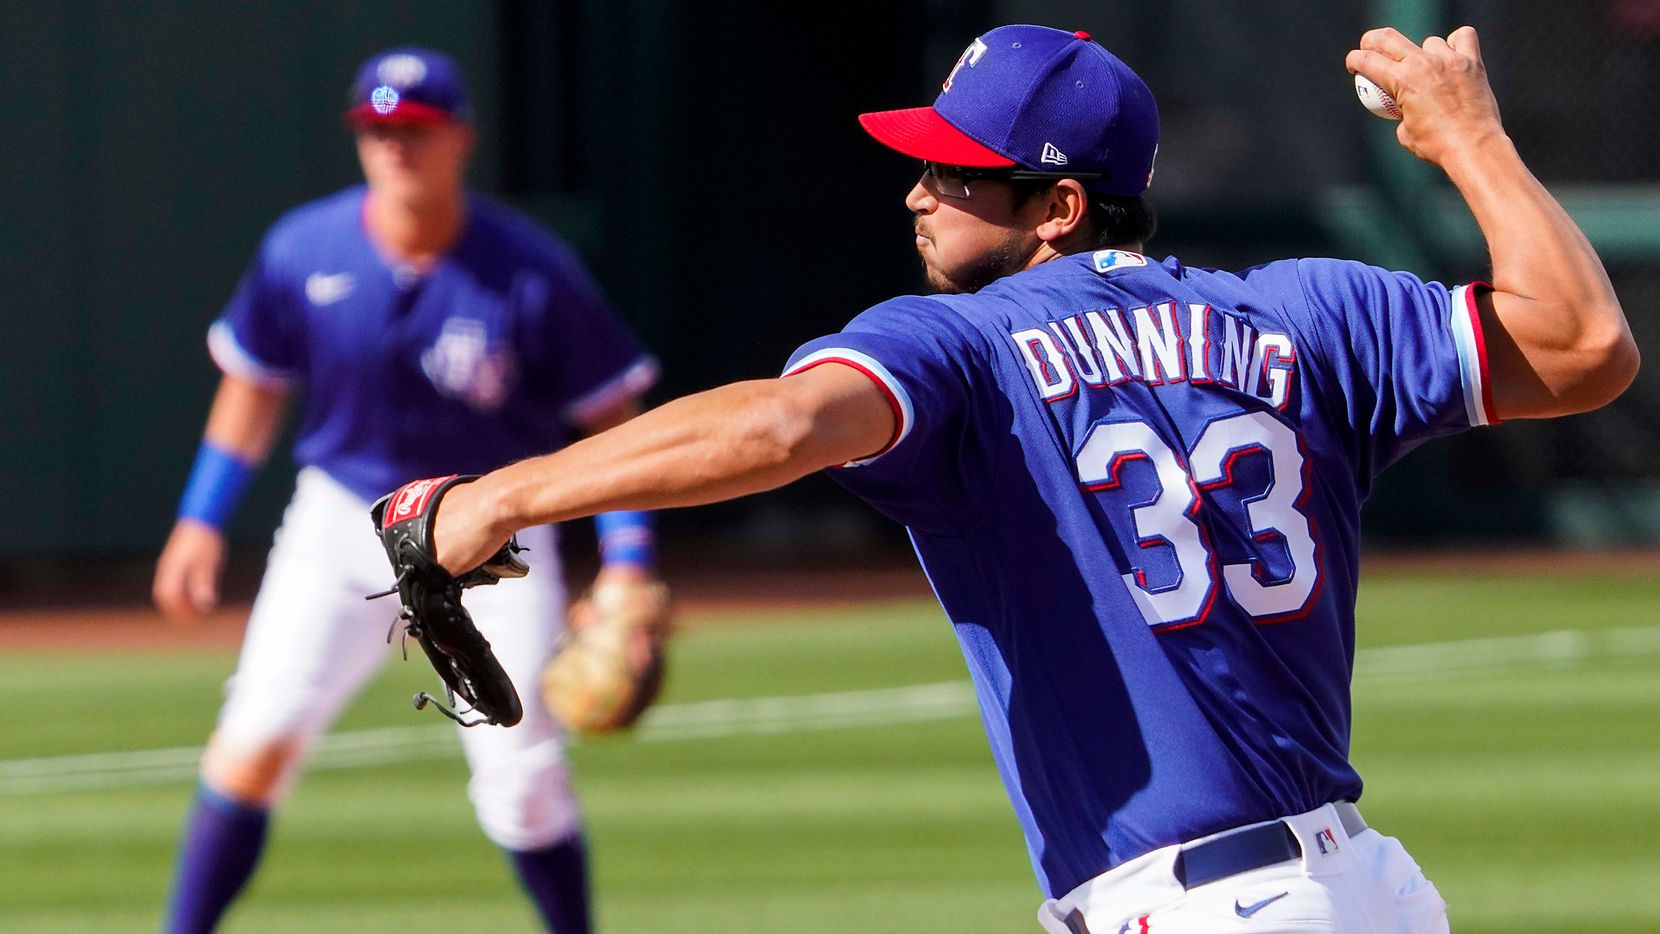 Texas Rangers pitcher Dane Dunning delivers during the seventh inning of a spring training game against the Los Angeles Dodgers at Surprise Stadium on Sunday, March 7, 2021, in Surprise, Ariz. (Smiley N. Pool/The Dallas Morning News)